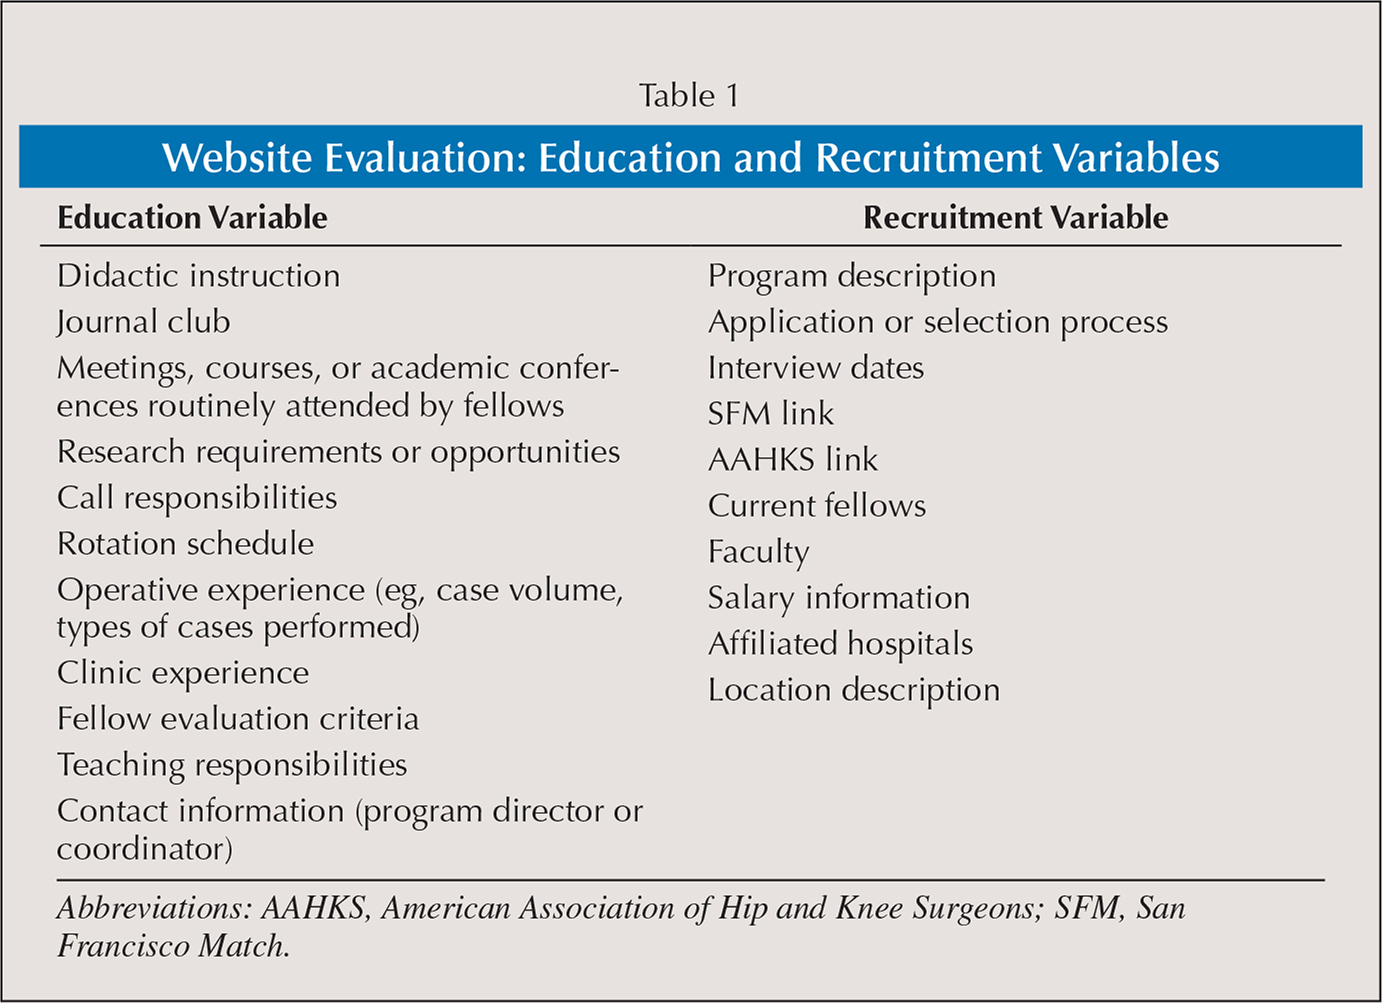 Website Evaluation: Education and Recruitment Variables